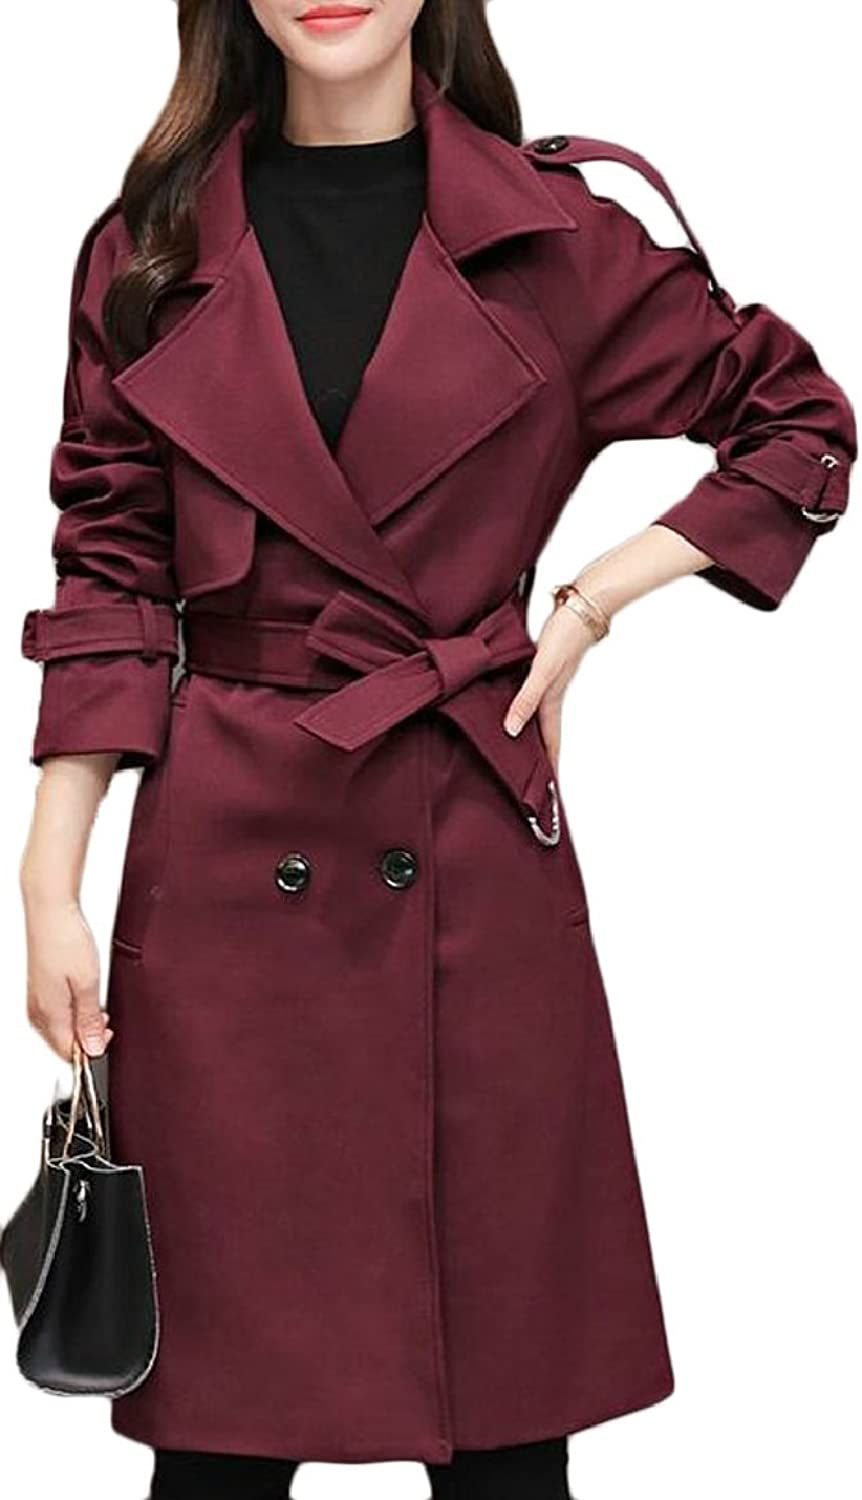 TymhgtCA Women's Double Breasted Casual Trench Coat with Belt